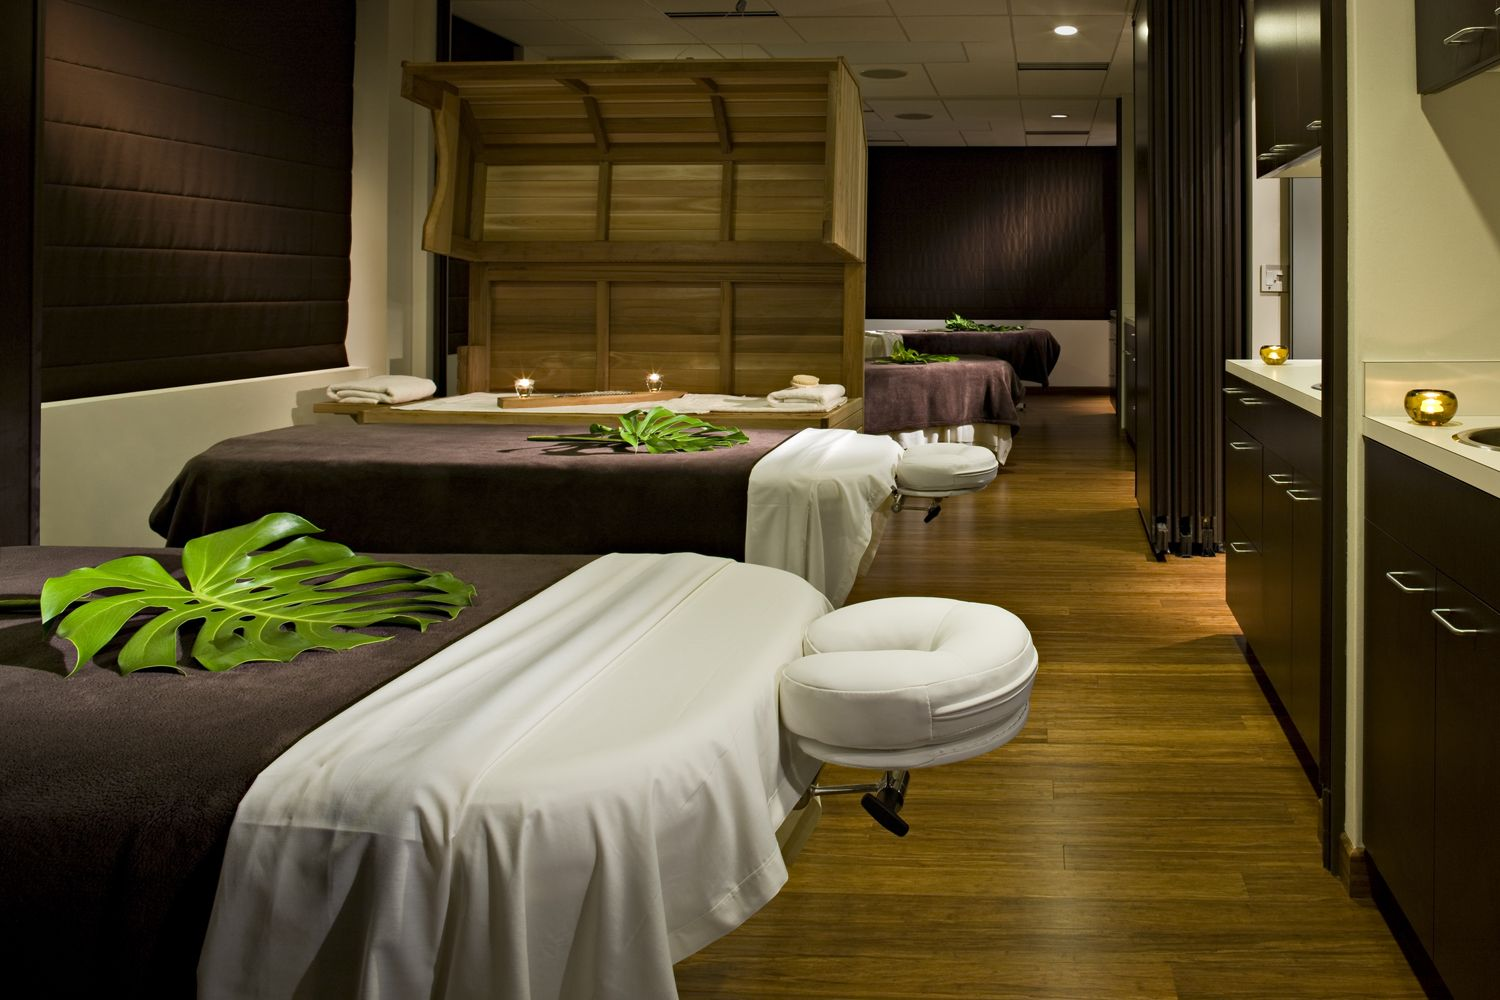 17 Best images about SPA - Therapy room on Pinterest  Facial room